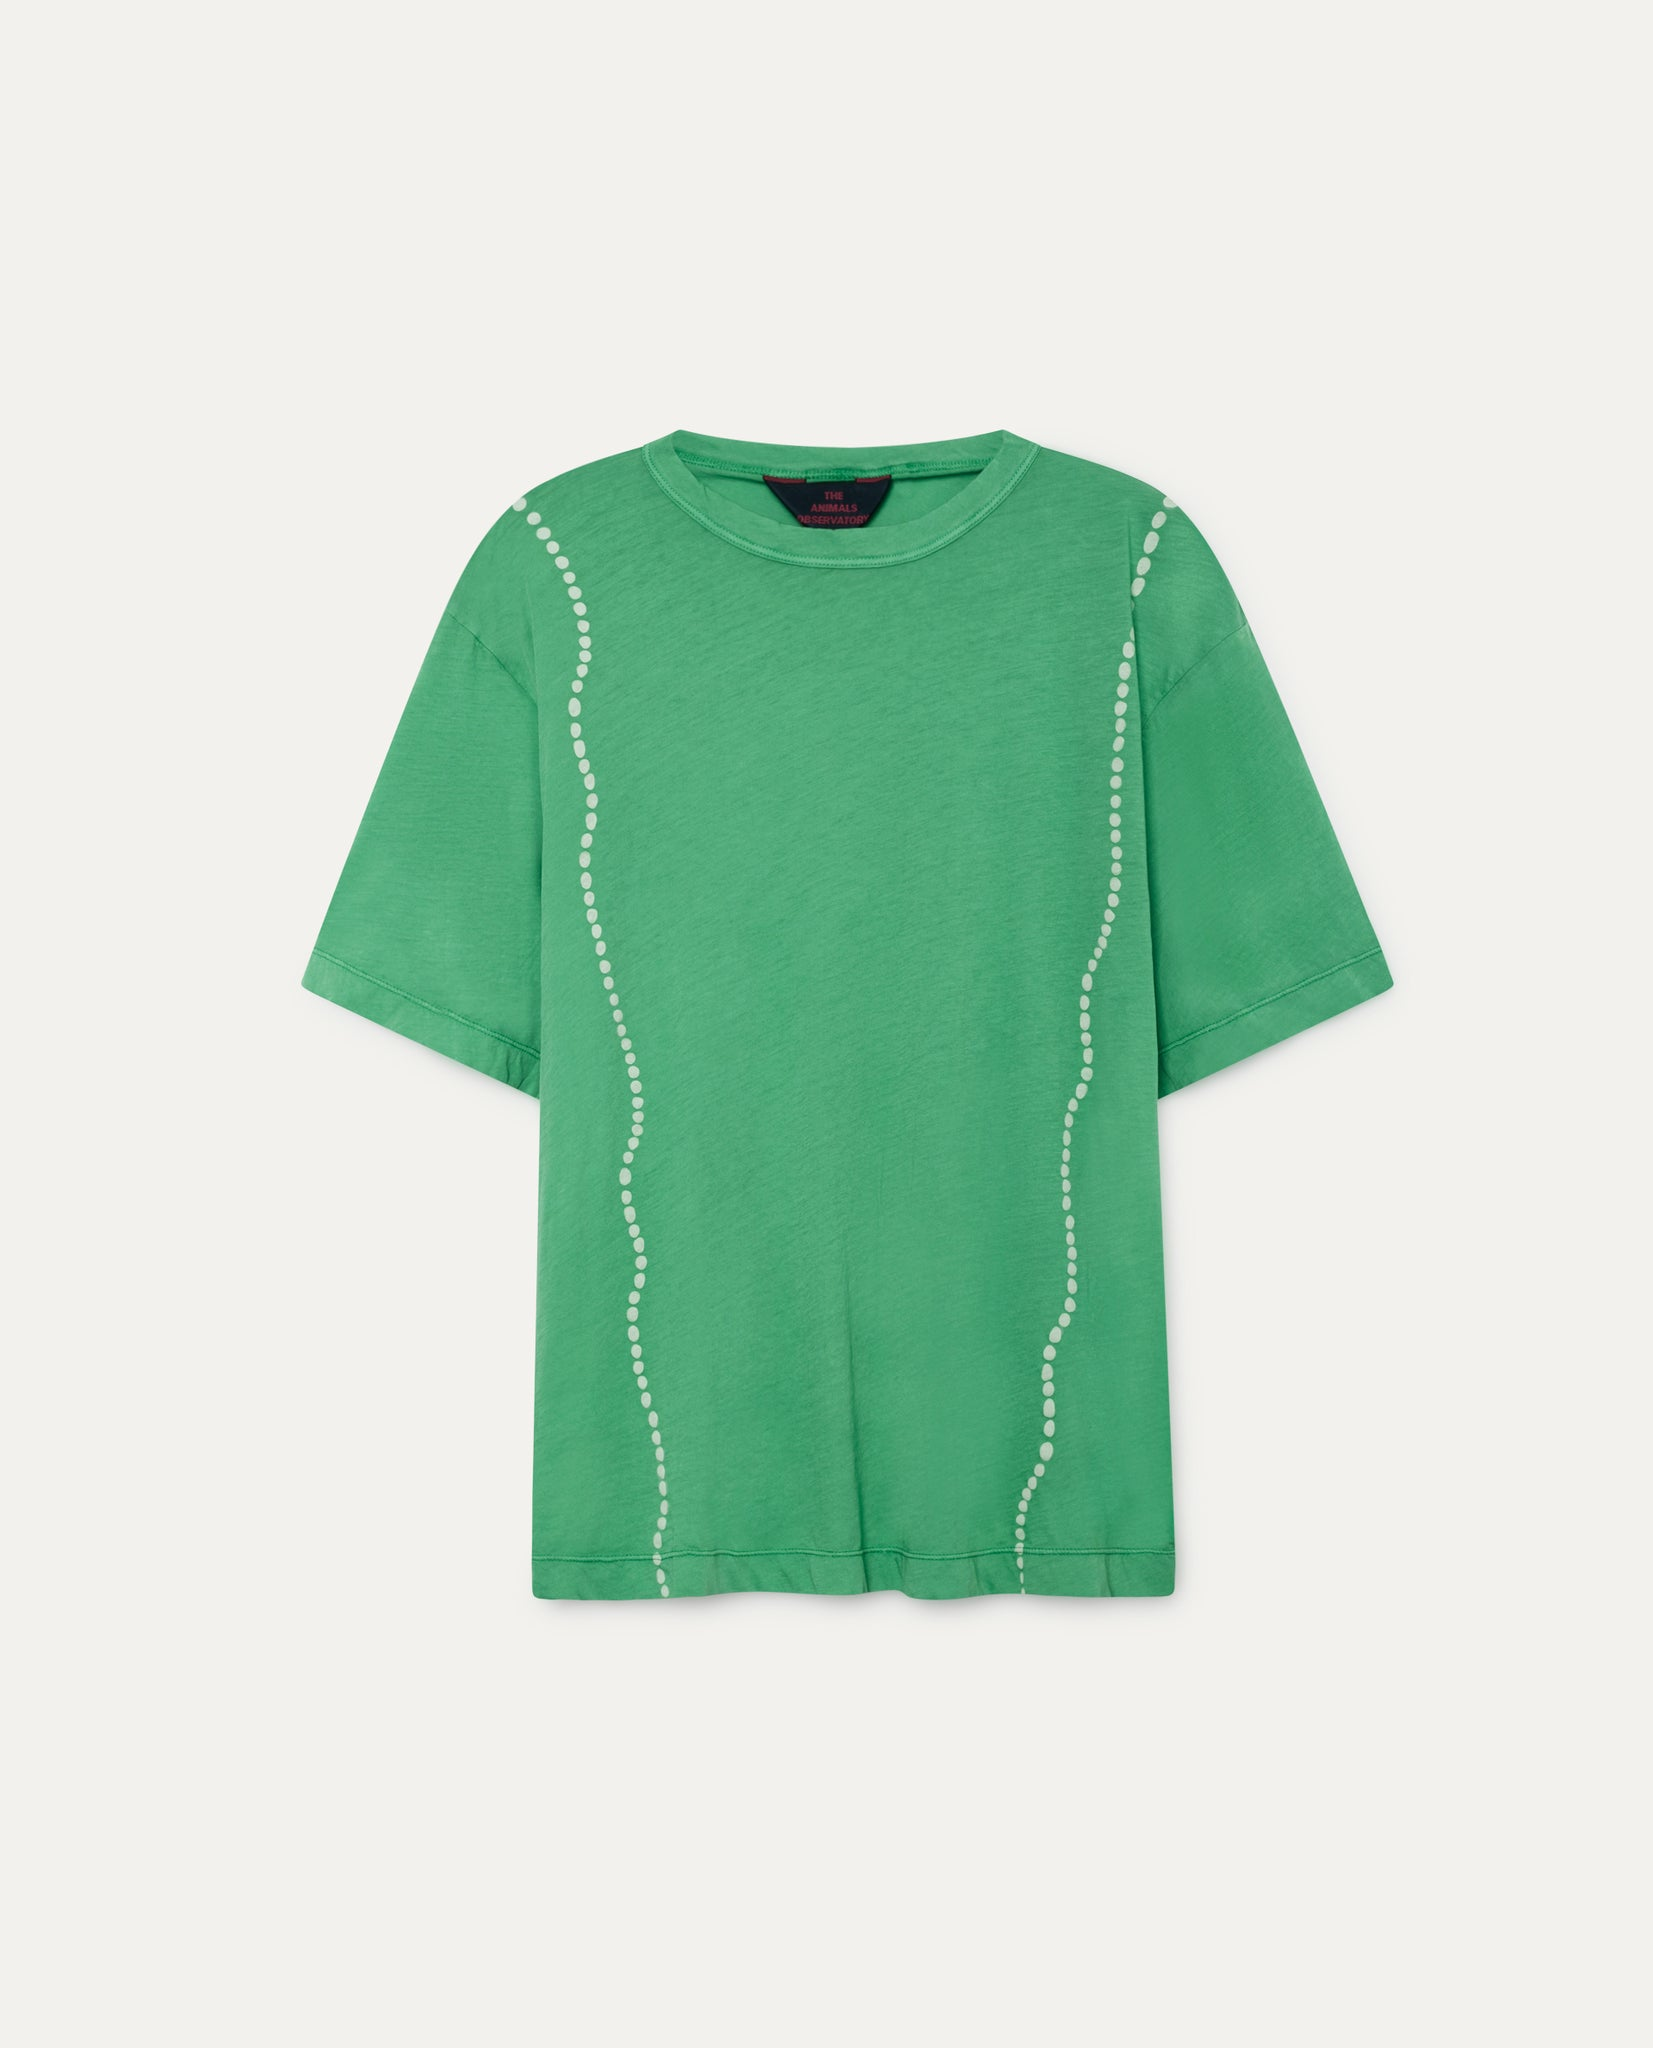 ROOSTER OVERSIZE KIDS T-SHIRT // GREEN SHELLS